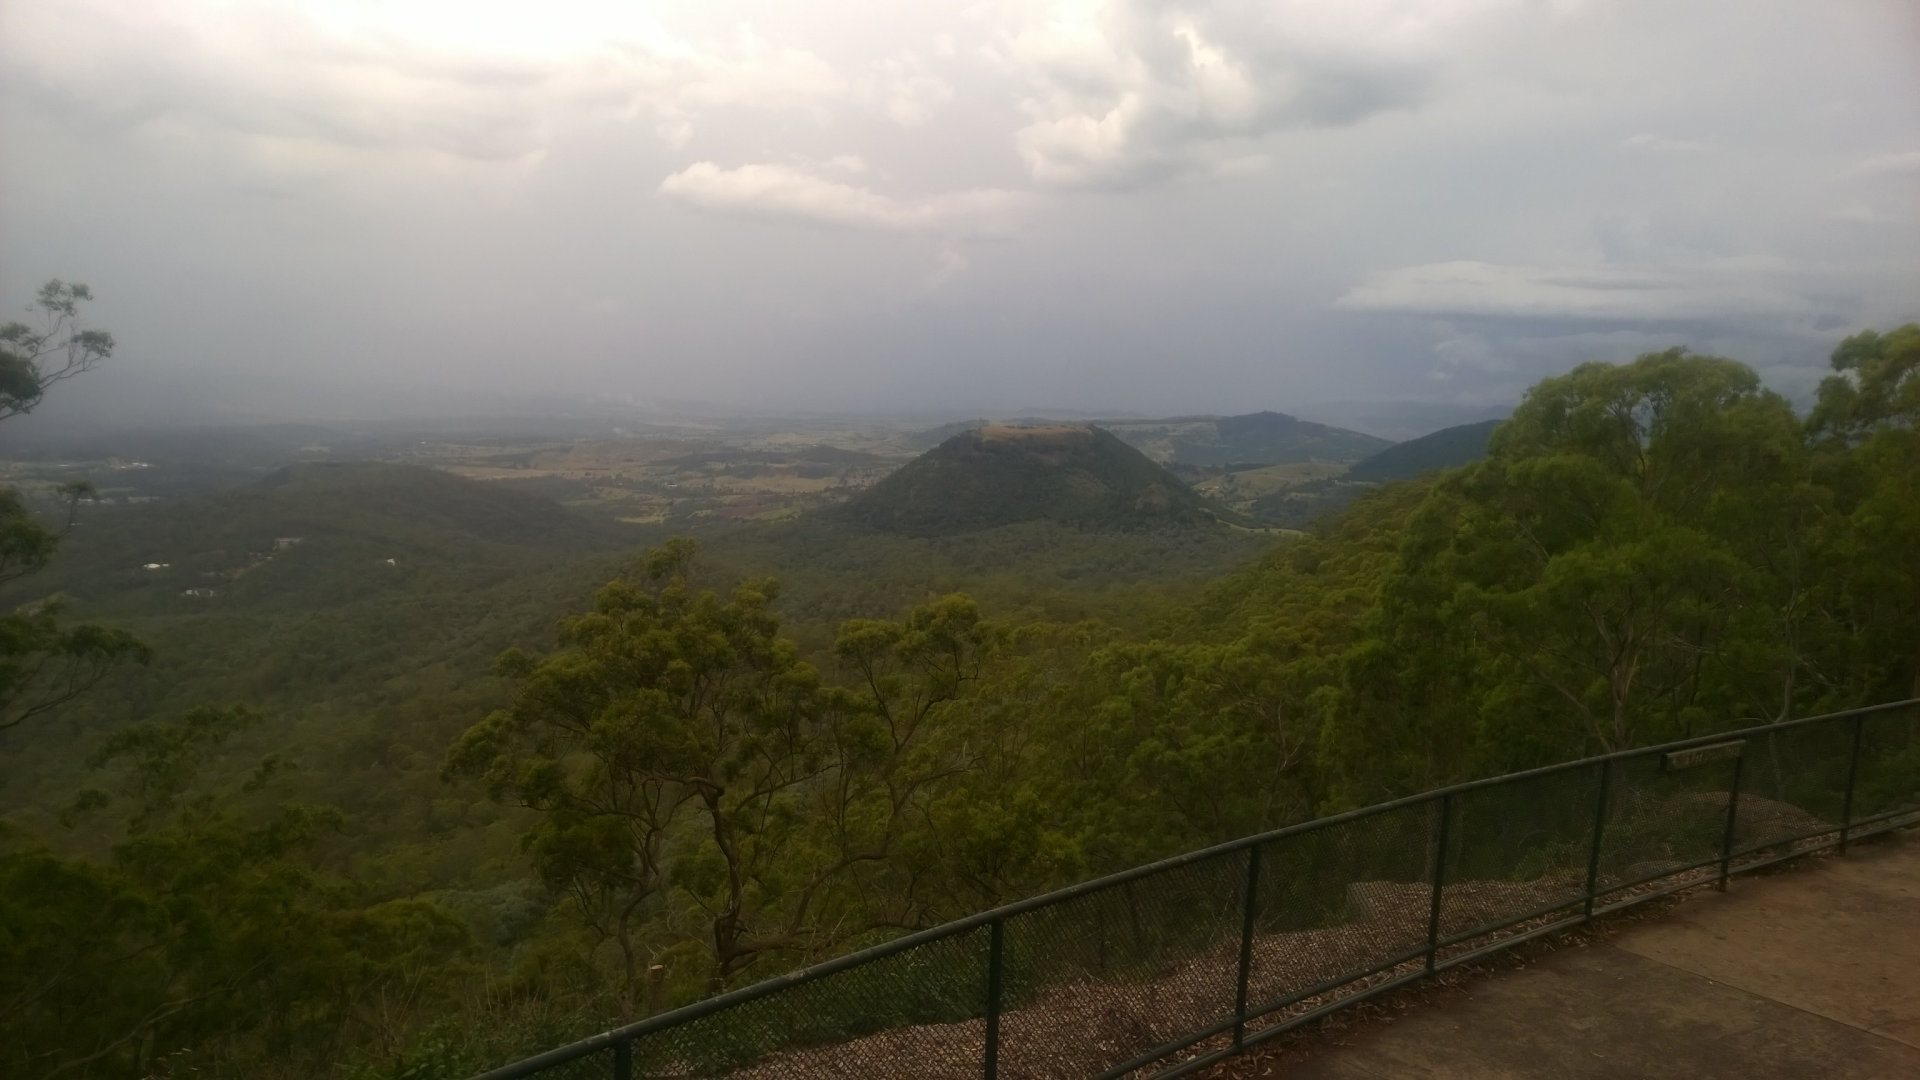 Lookout from Picnic Point in Toowoomba with views off the Great Dividing Range towards Tabletop Mountain and the Lockyer Valley, Picnic Point has gardens, picnic areas, playground, waterfall, and walks